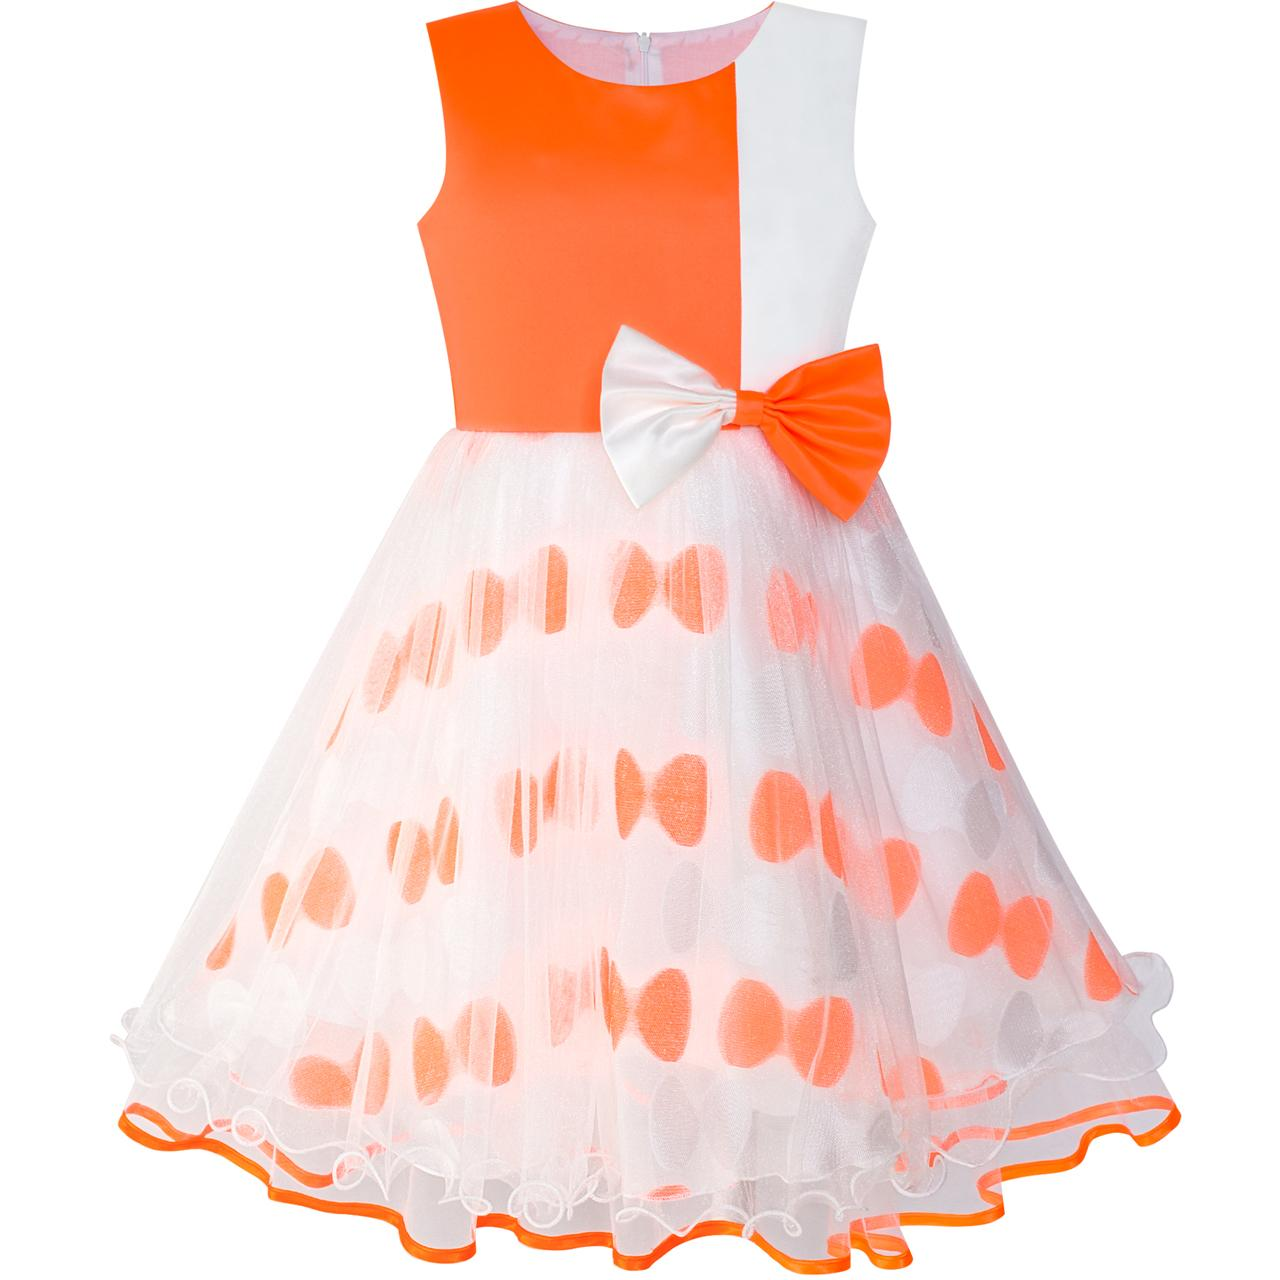 Flower Girl Dress Bow Tie Orange White Color Contrast Sundress 2018 Summer Princess Wedding Party Dresses Clothes Size 4-12 sunny fashion girls dress bow tie sleeveless novelty paisley style print size 3 8 girl dresses princess dress vestidos sundress